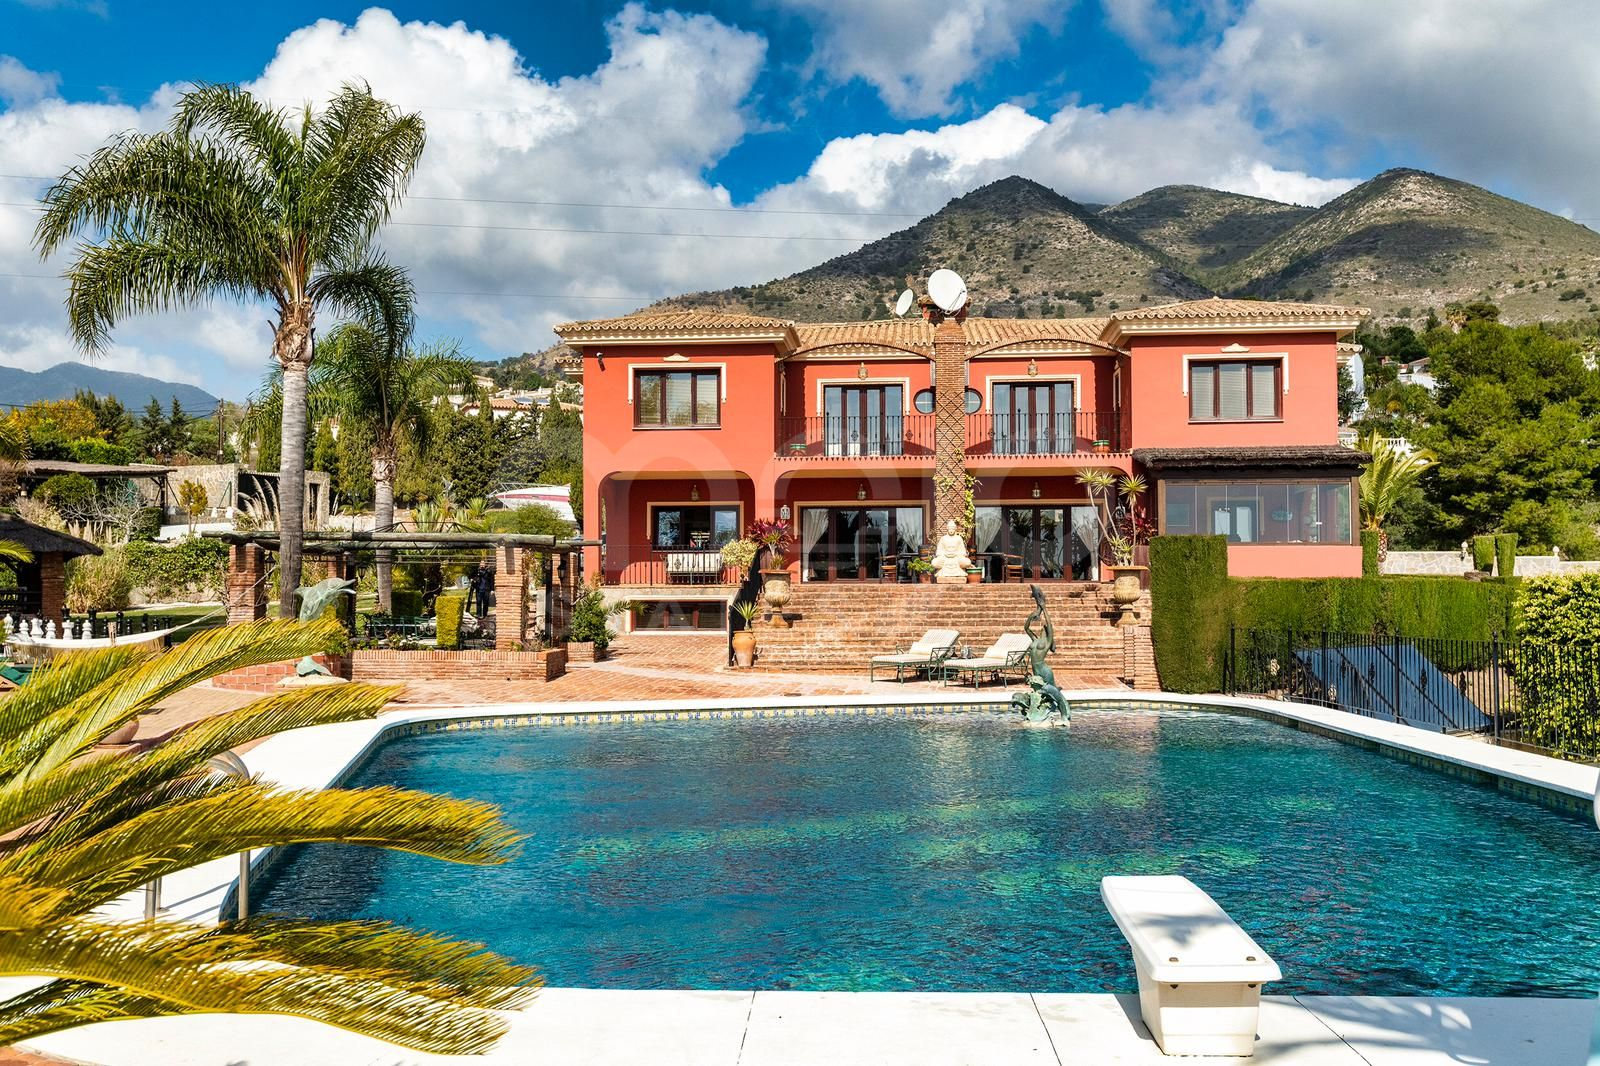 Villa for sale in La Capellania, Benalmadena